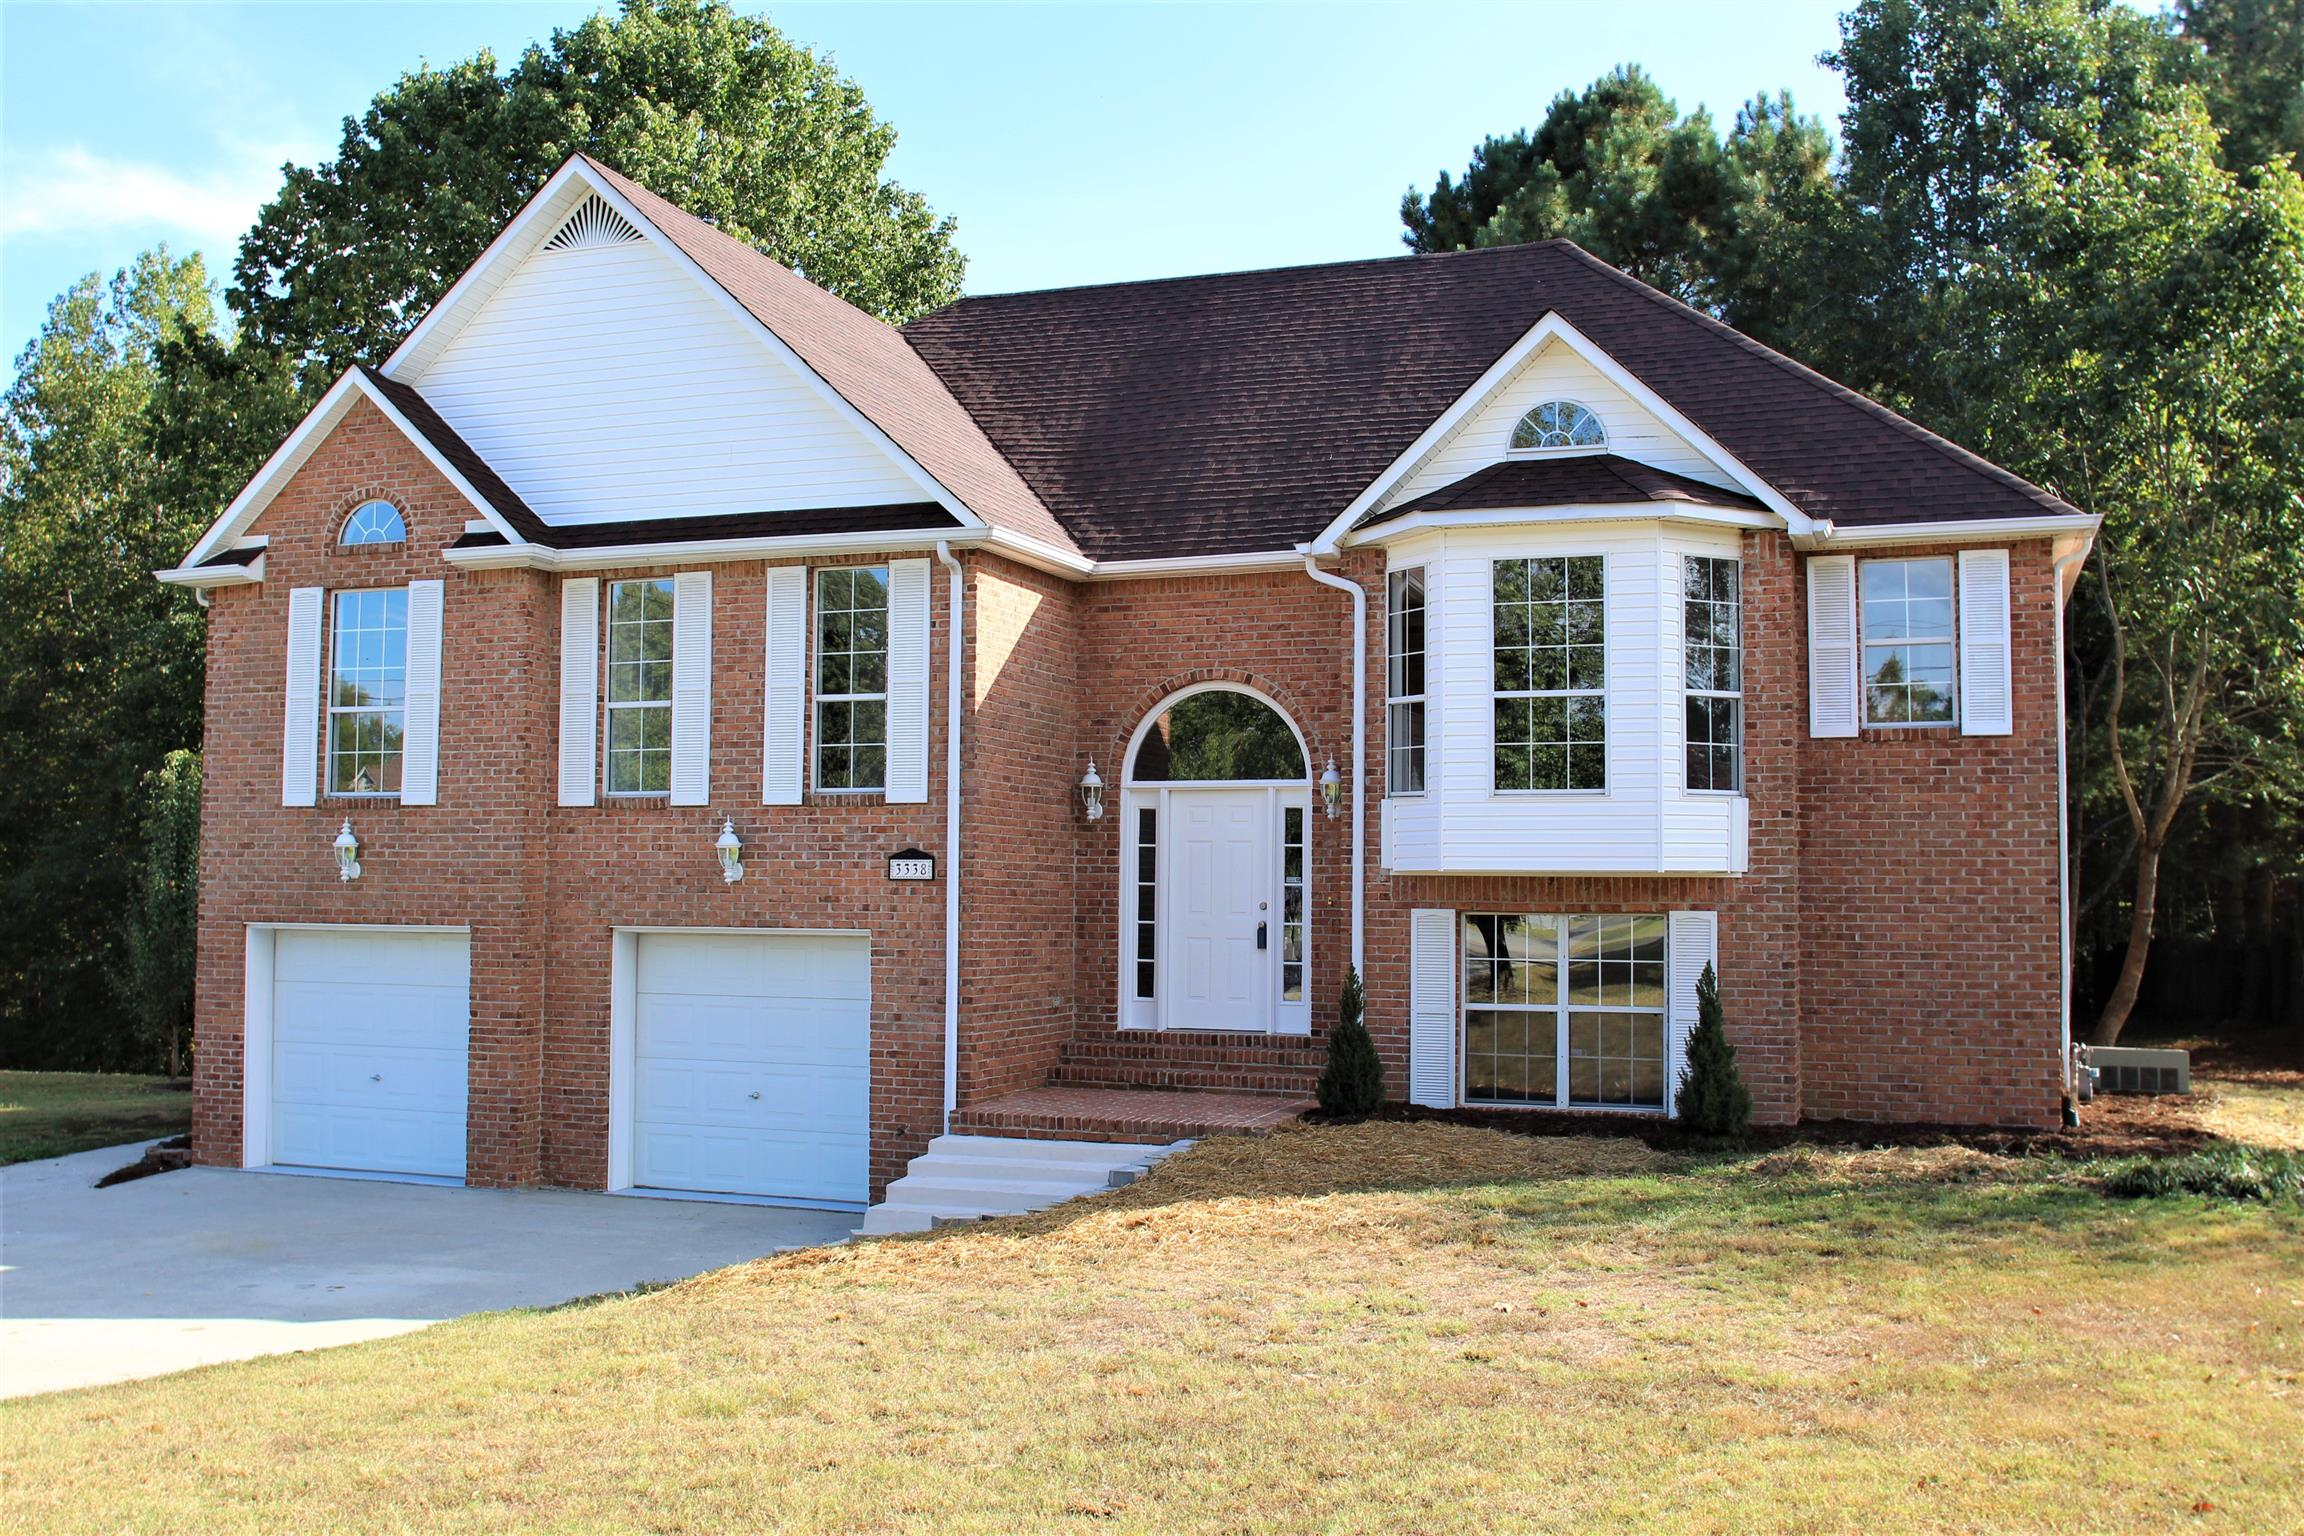 3338 Claybrook Dr, Cookeville, TN 38506 - Cookeville, TN real estate listing